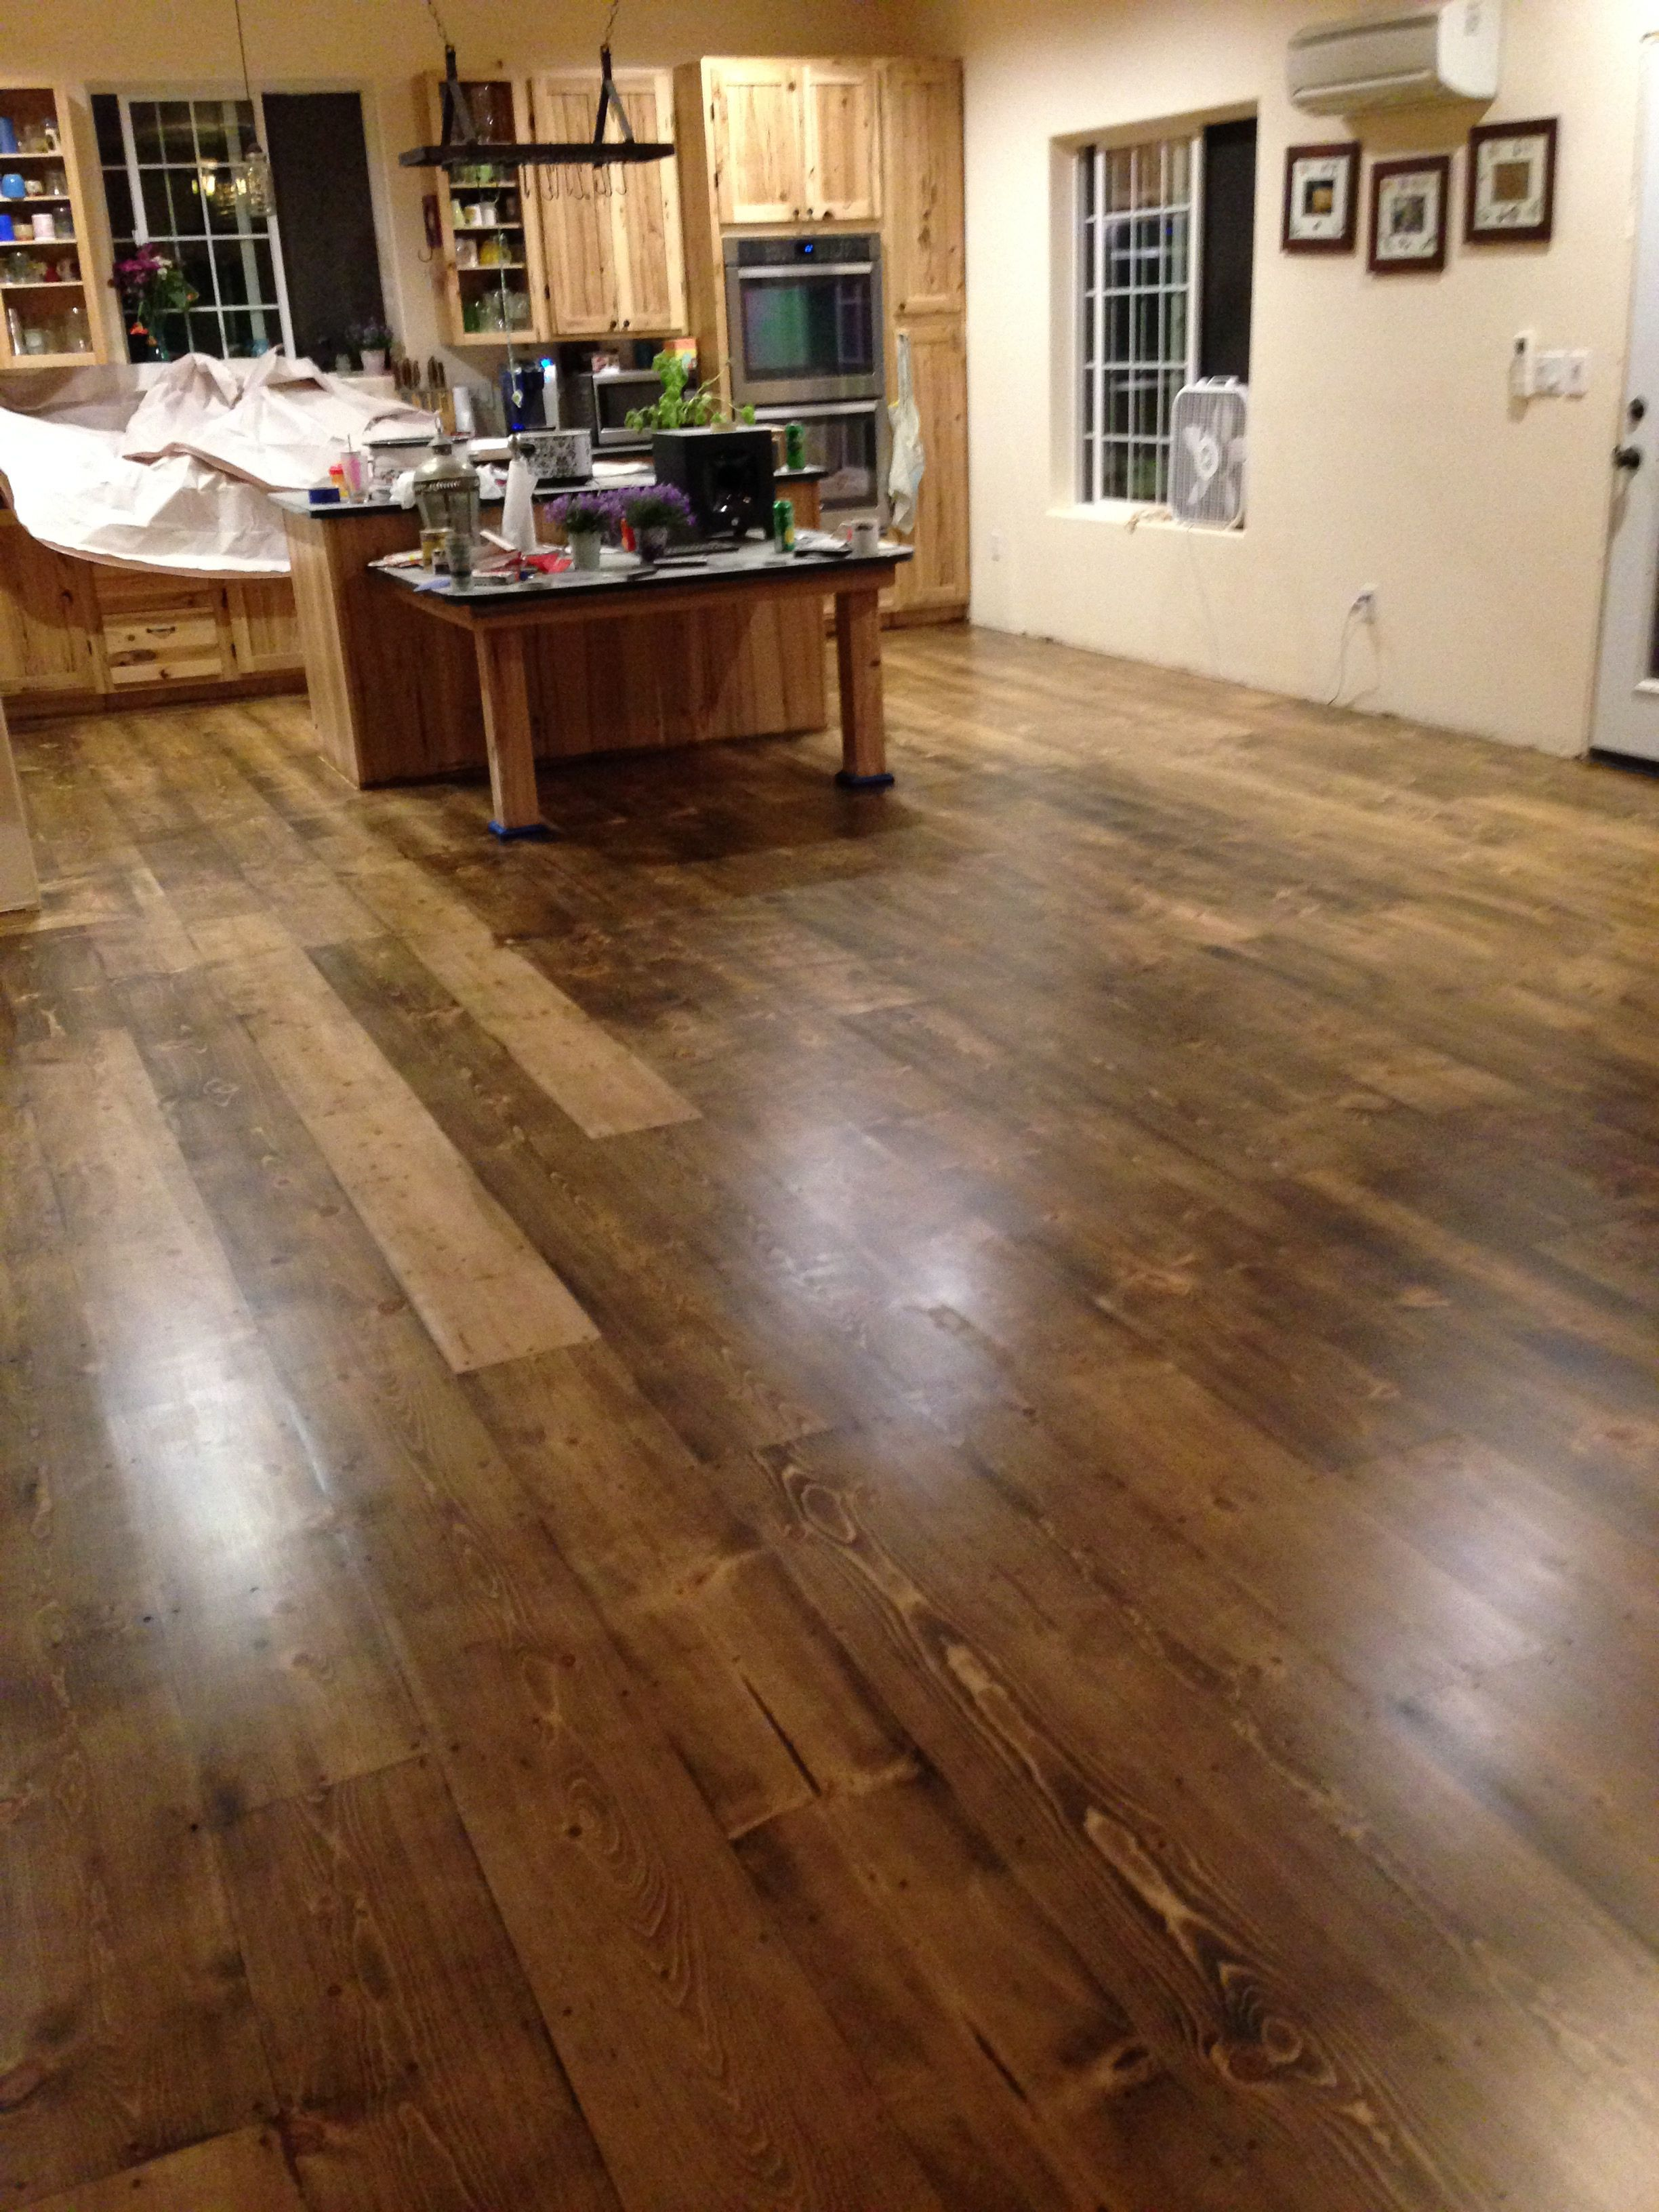 Pine Plank Floors After Hand Rubbed Dark Stain And 2